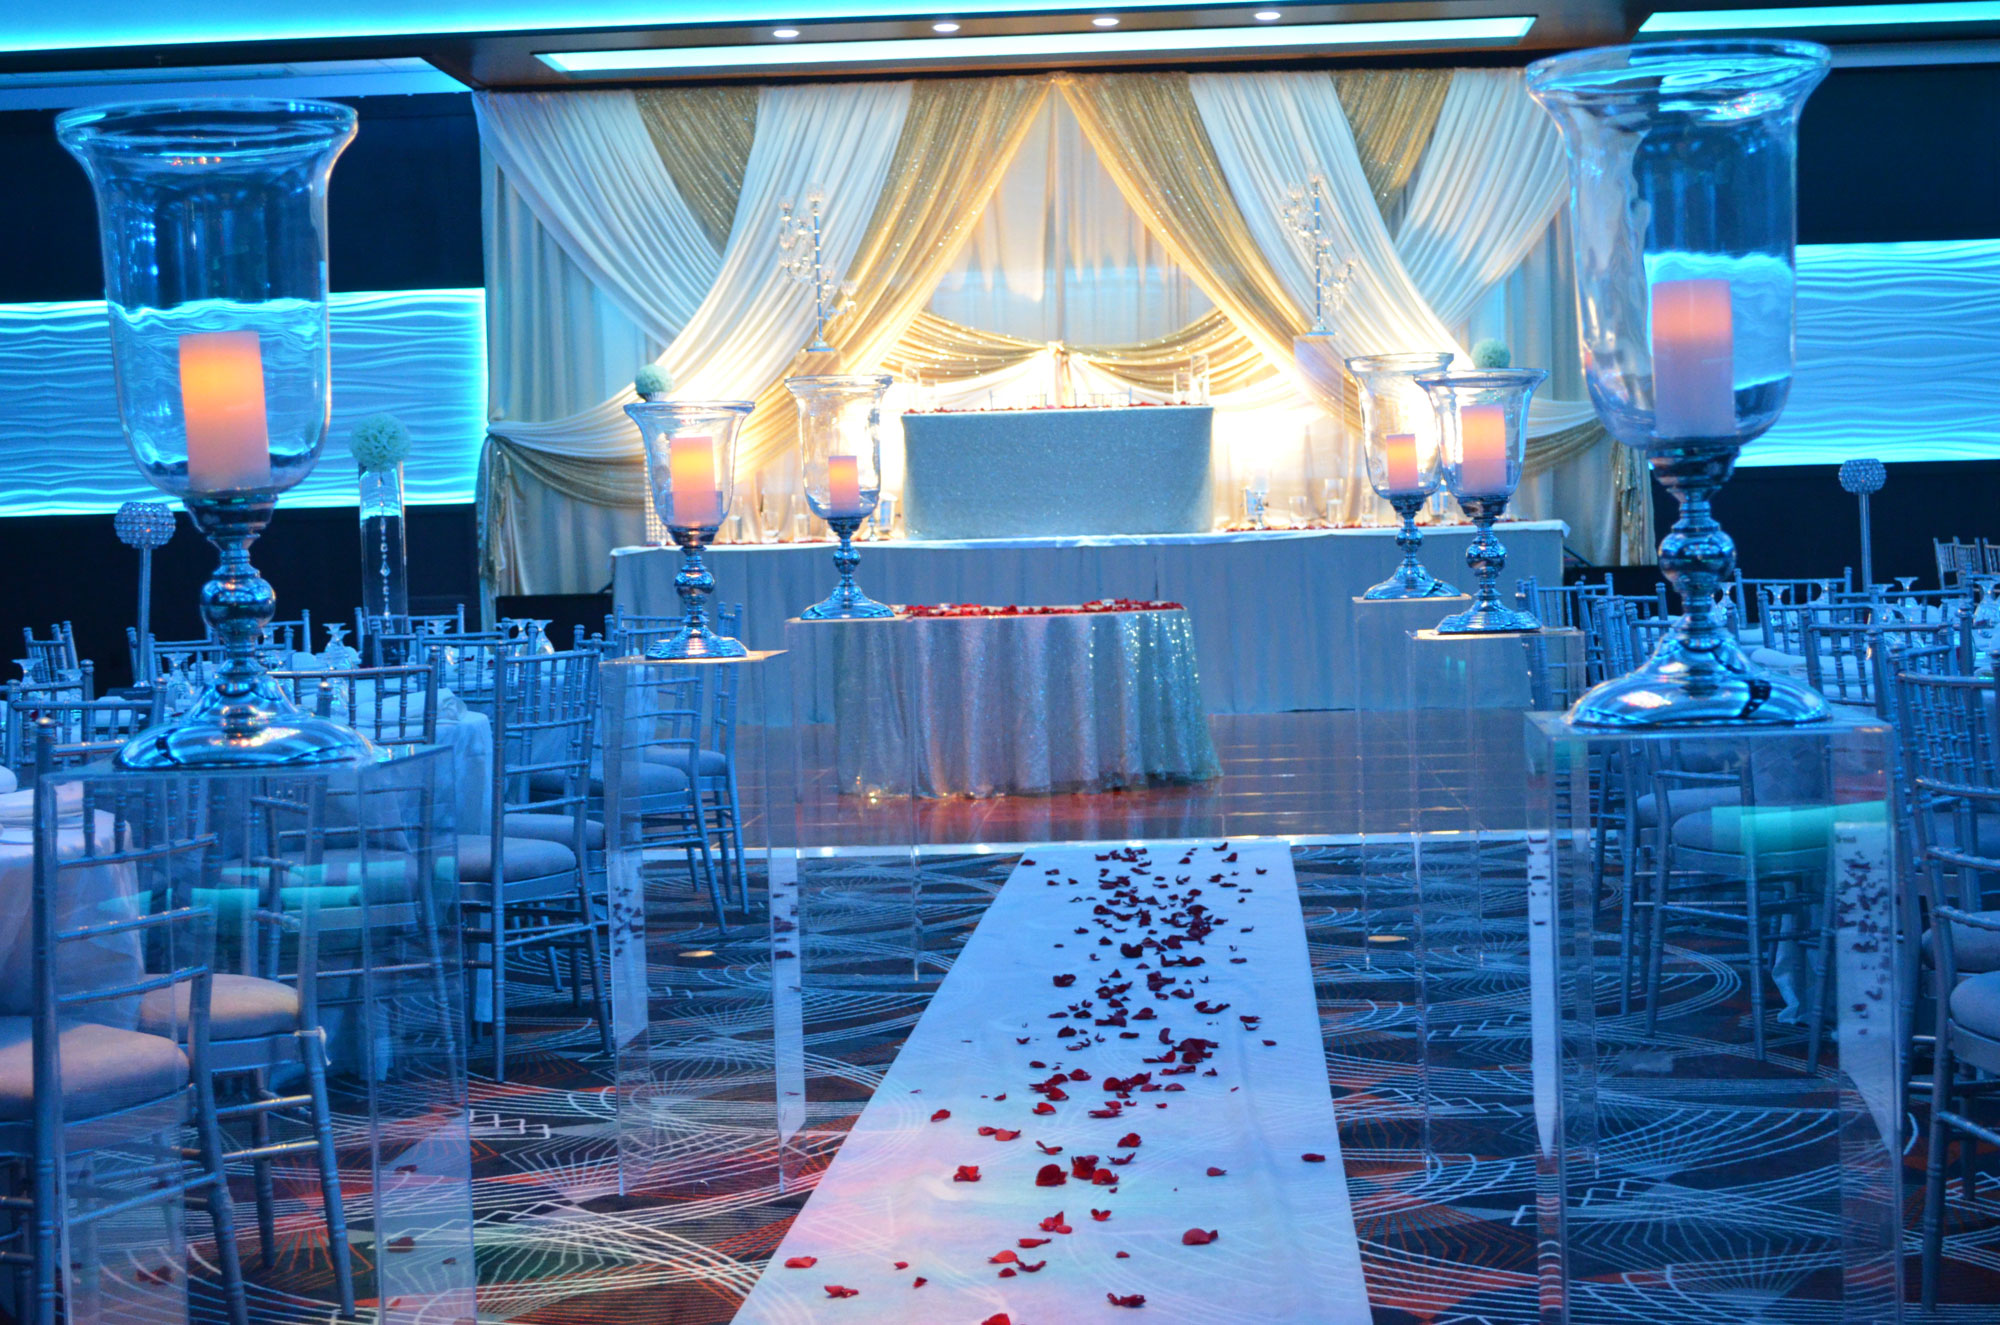 Aria Banquet Hall - wedding reception - decor - lighting - decorations - isle way - cake - table - stage - surrey - corporate event